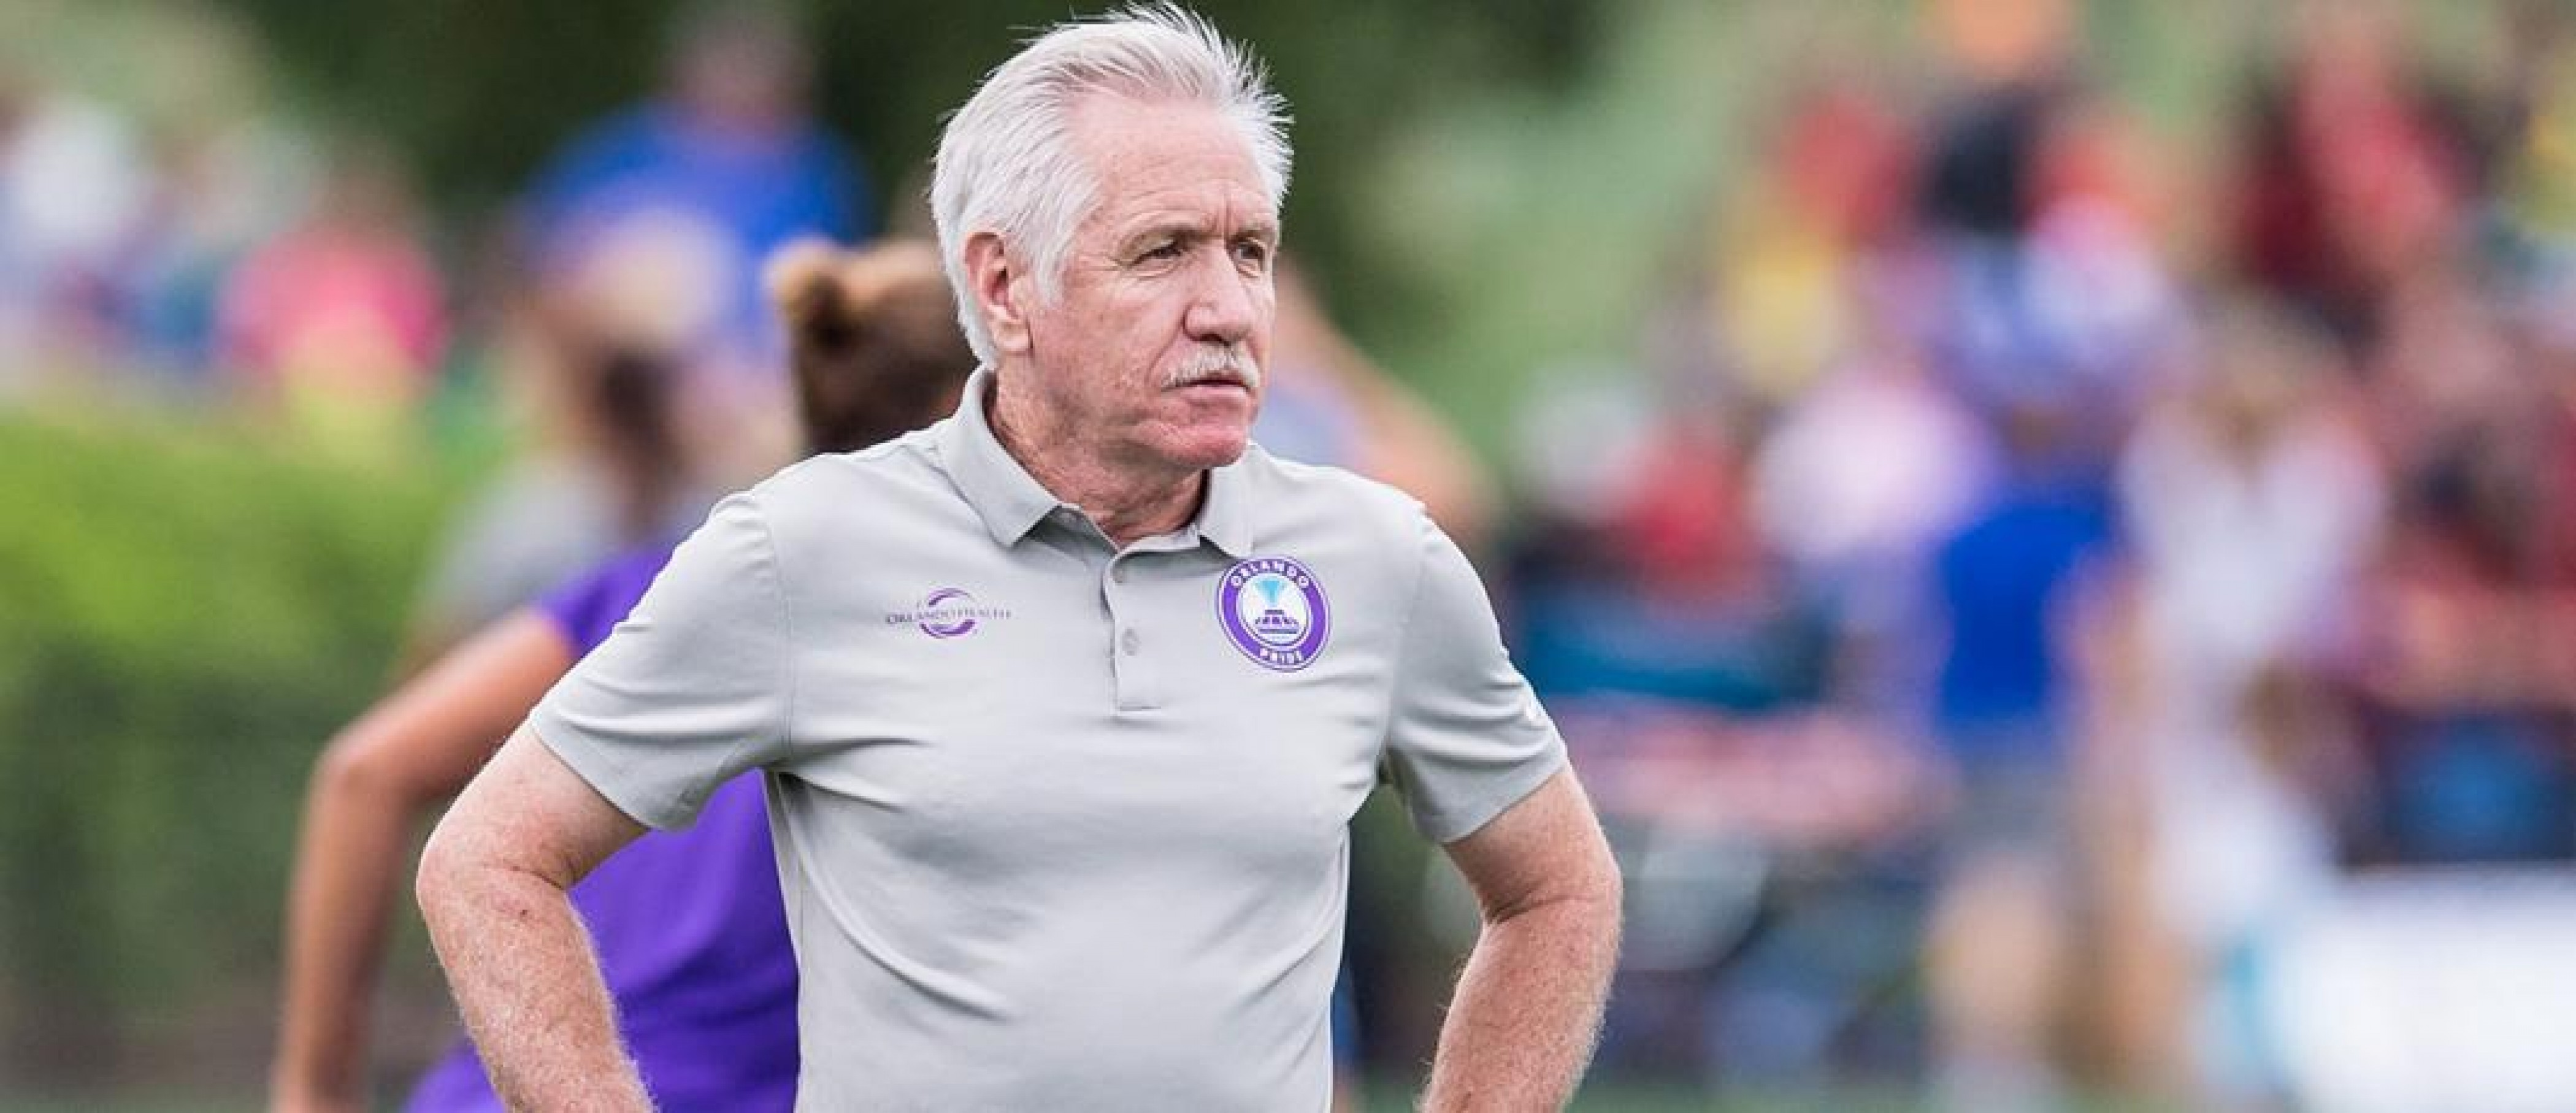 The Orlando Pride and Tom Sermani part ways